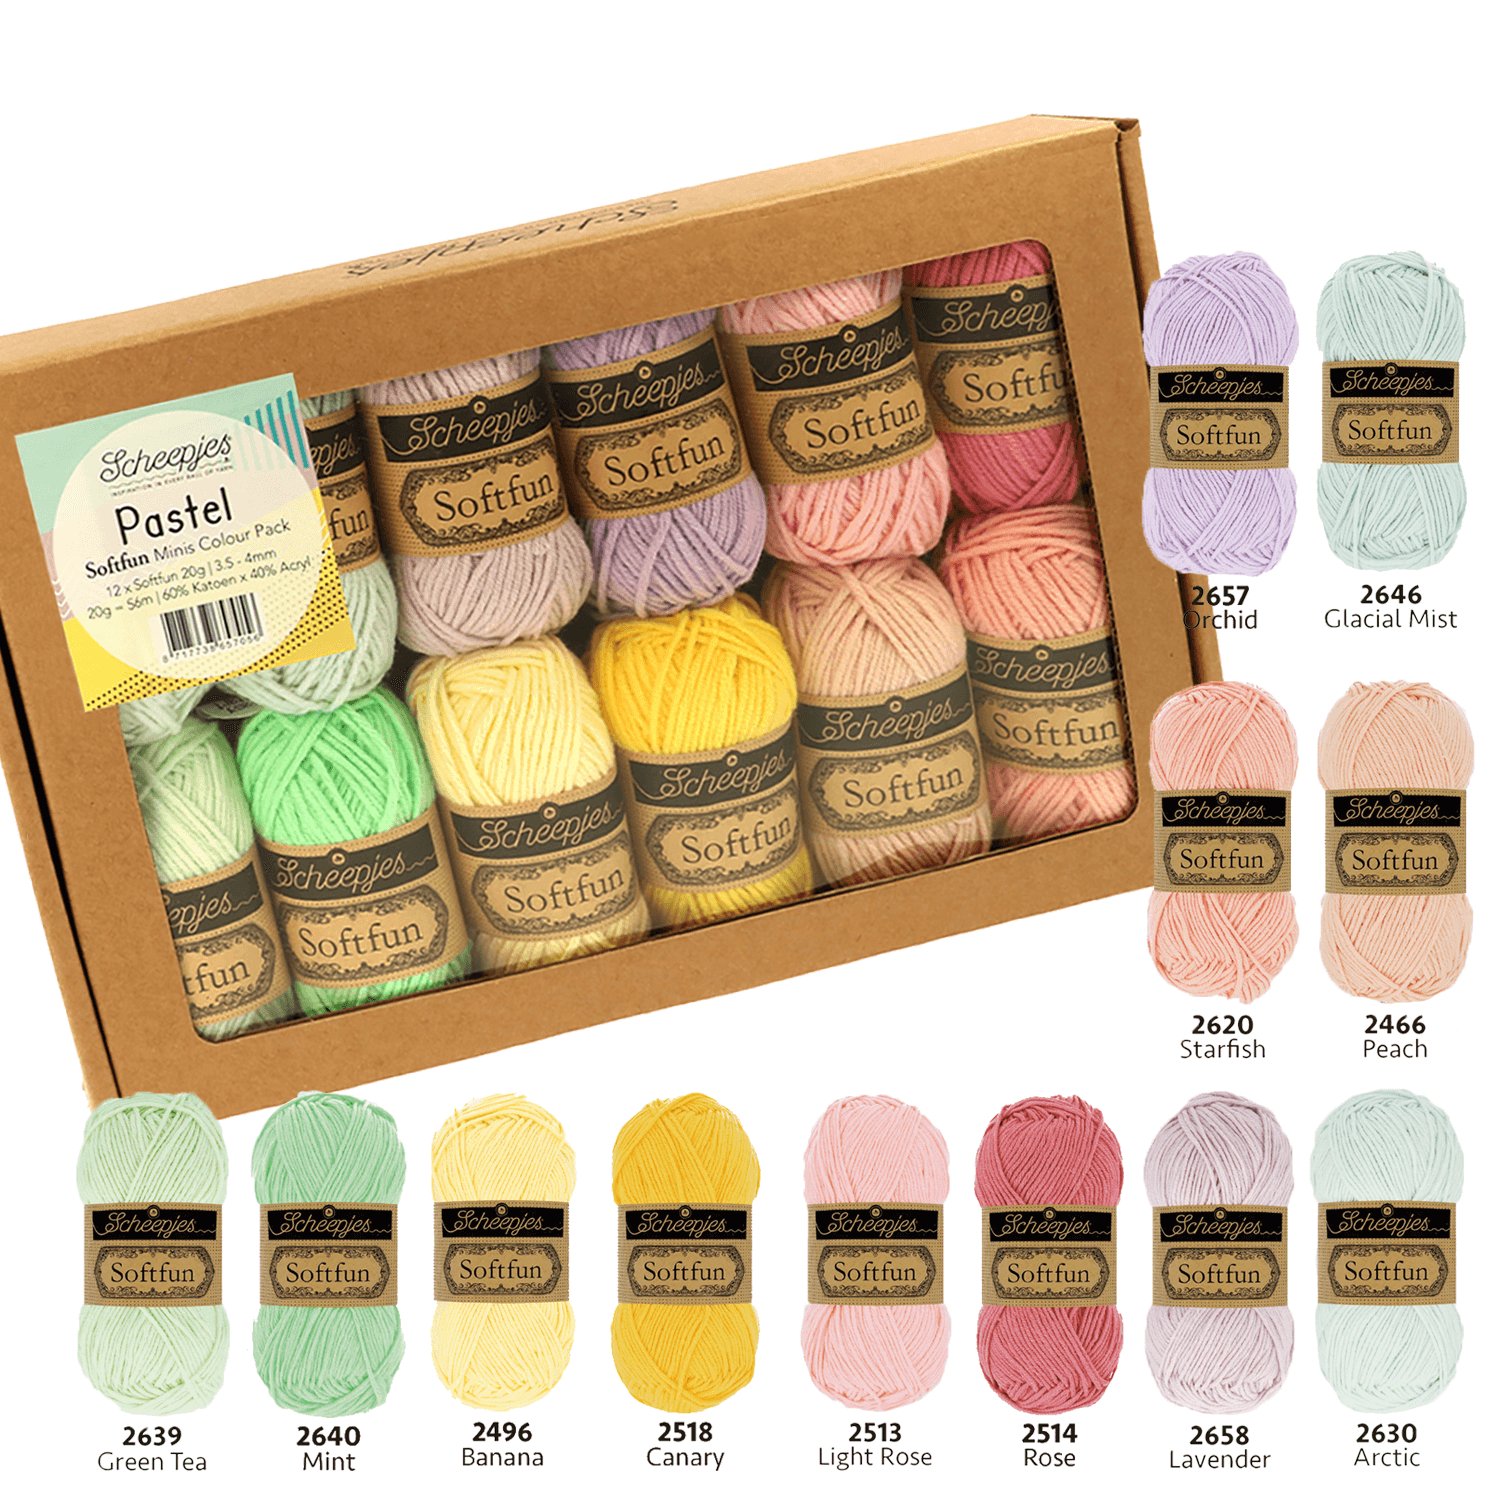 softsun scheepjes mini colour pack pastel productafbeelding 2.png